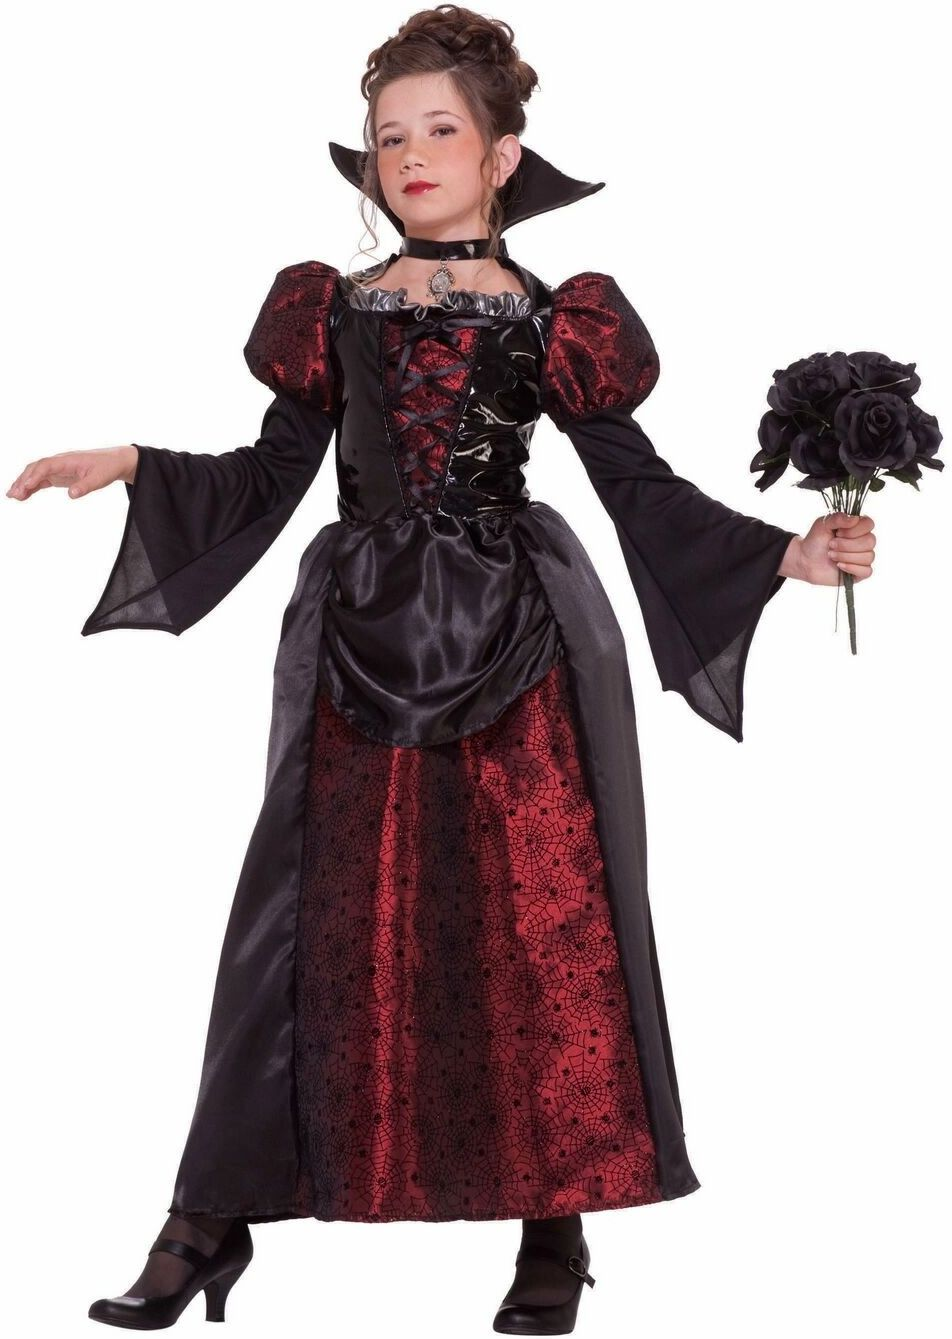 Halloween Vampire Costume Kids.Vampire Miss Kids Costume Halloween Girls Vampire Costume